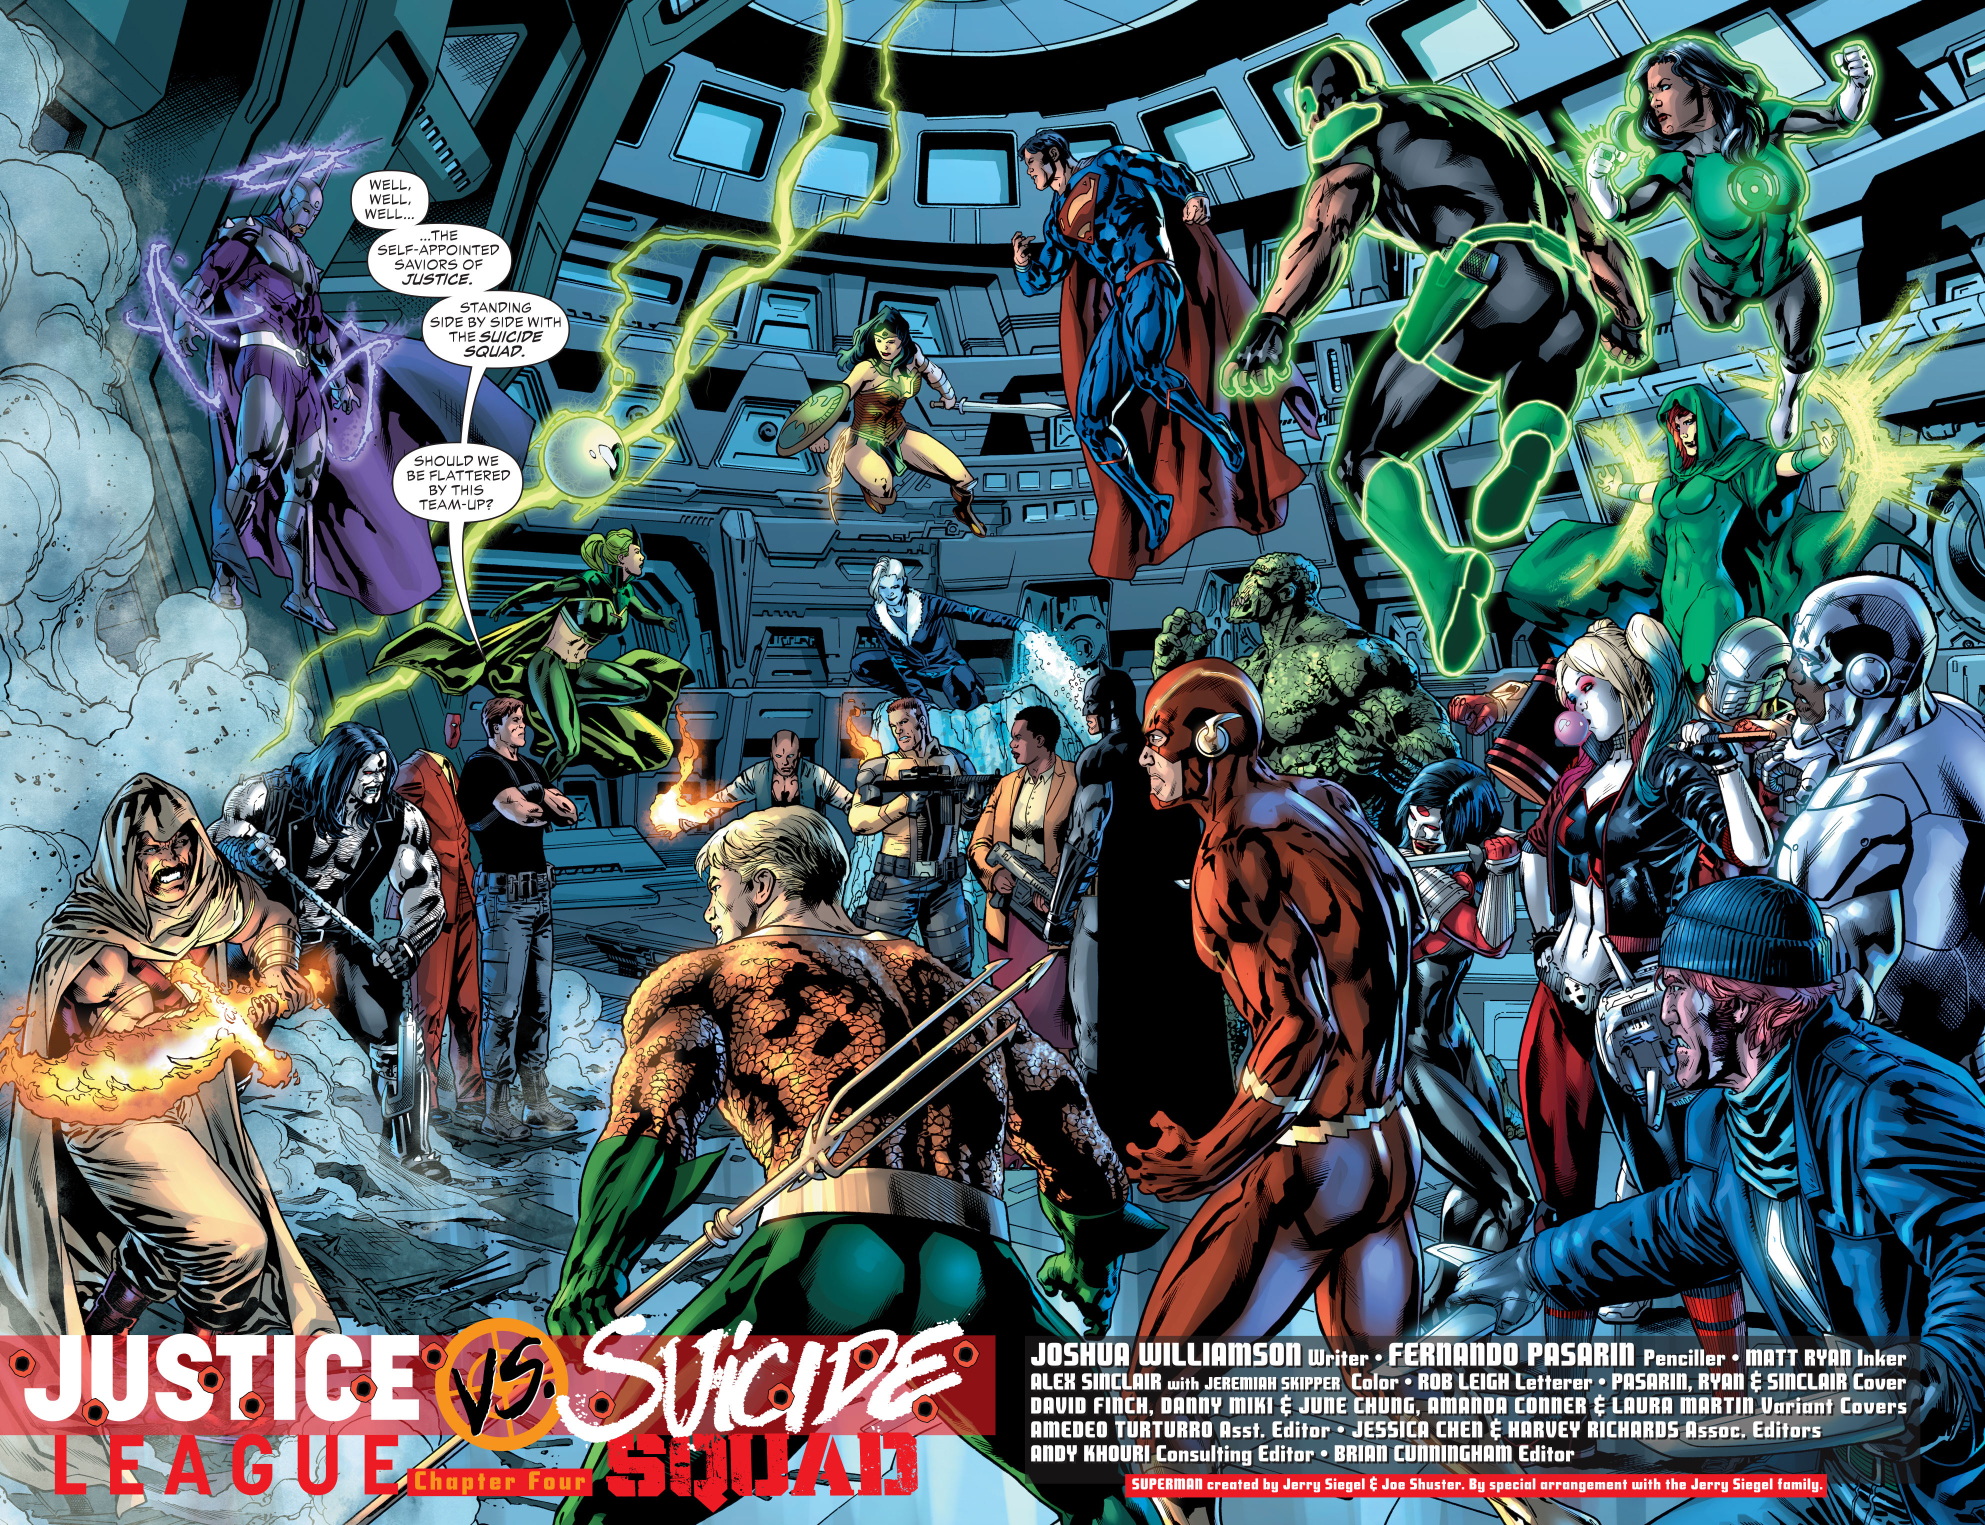 maxwell-lords-team-faces-off-against-the-justice-league-and-suicide-squad